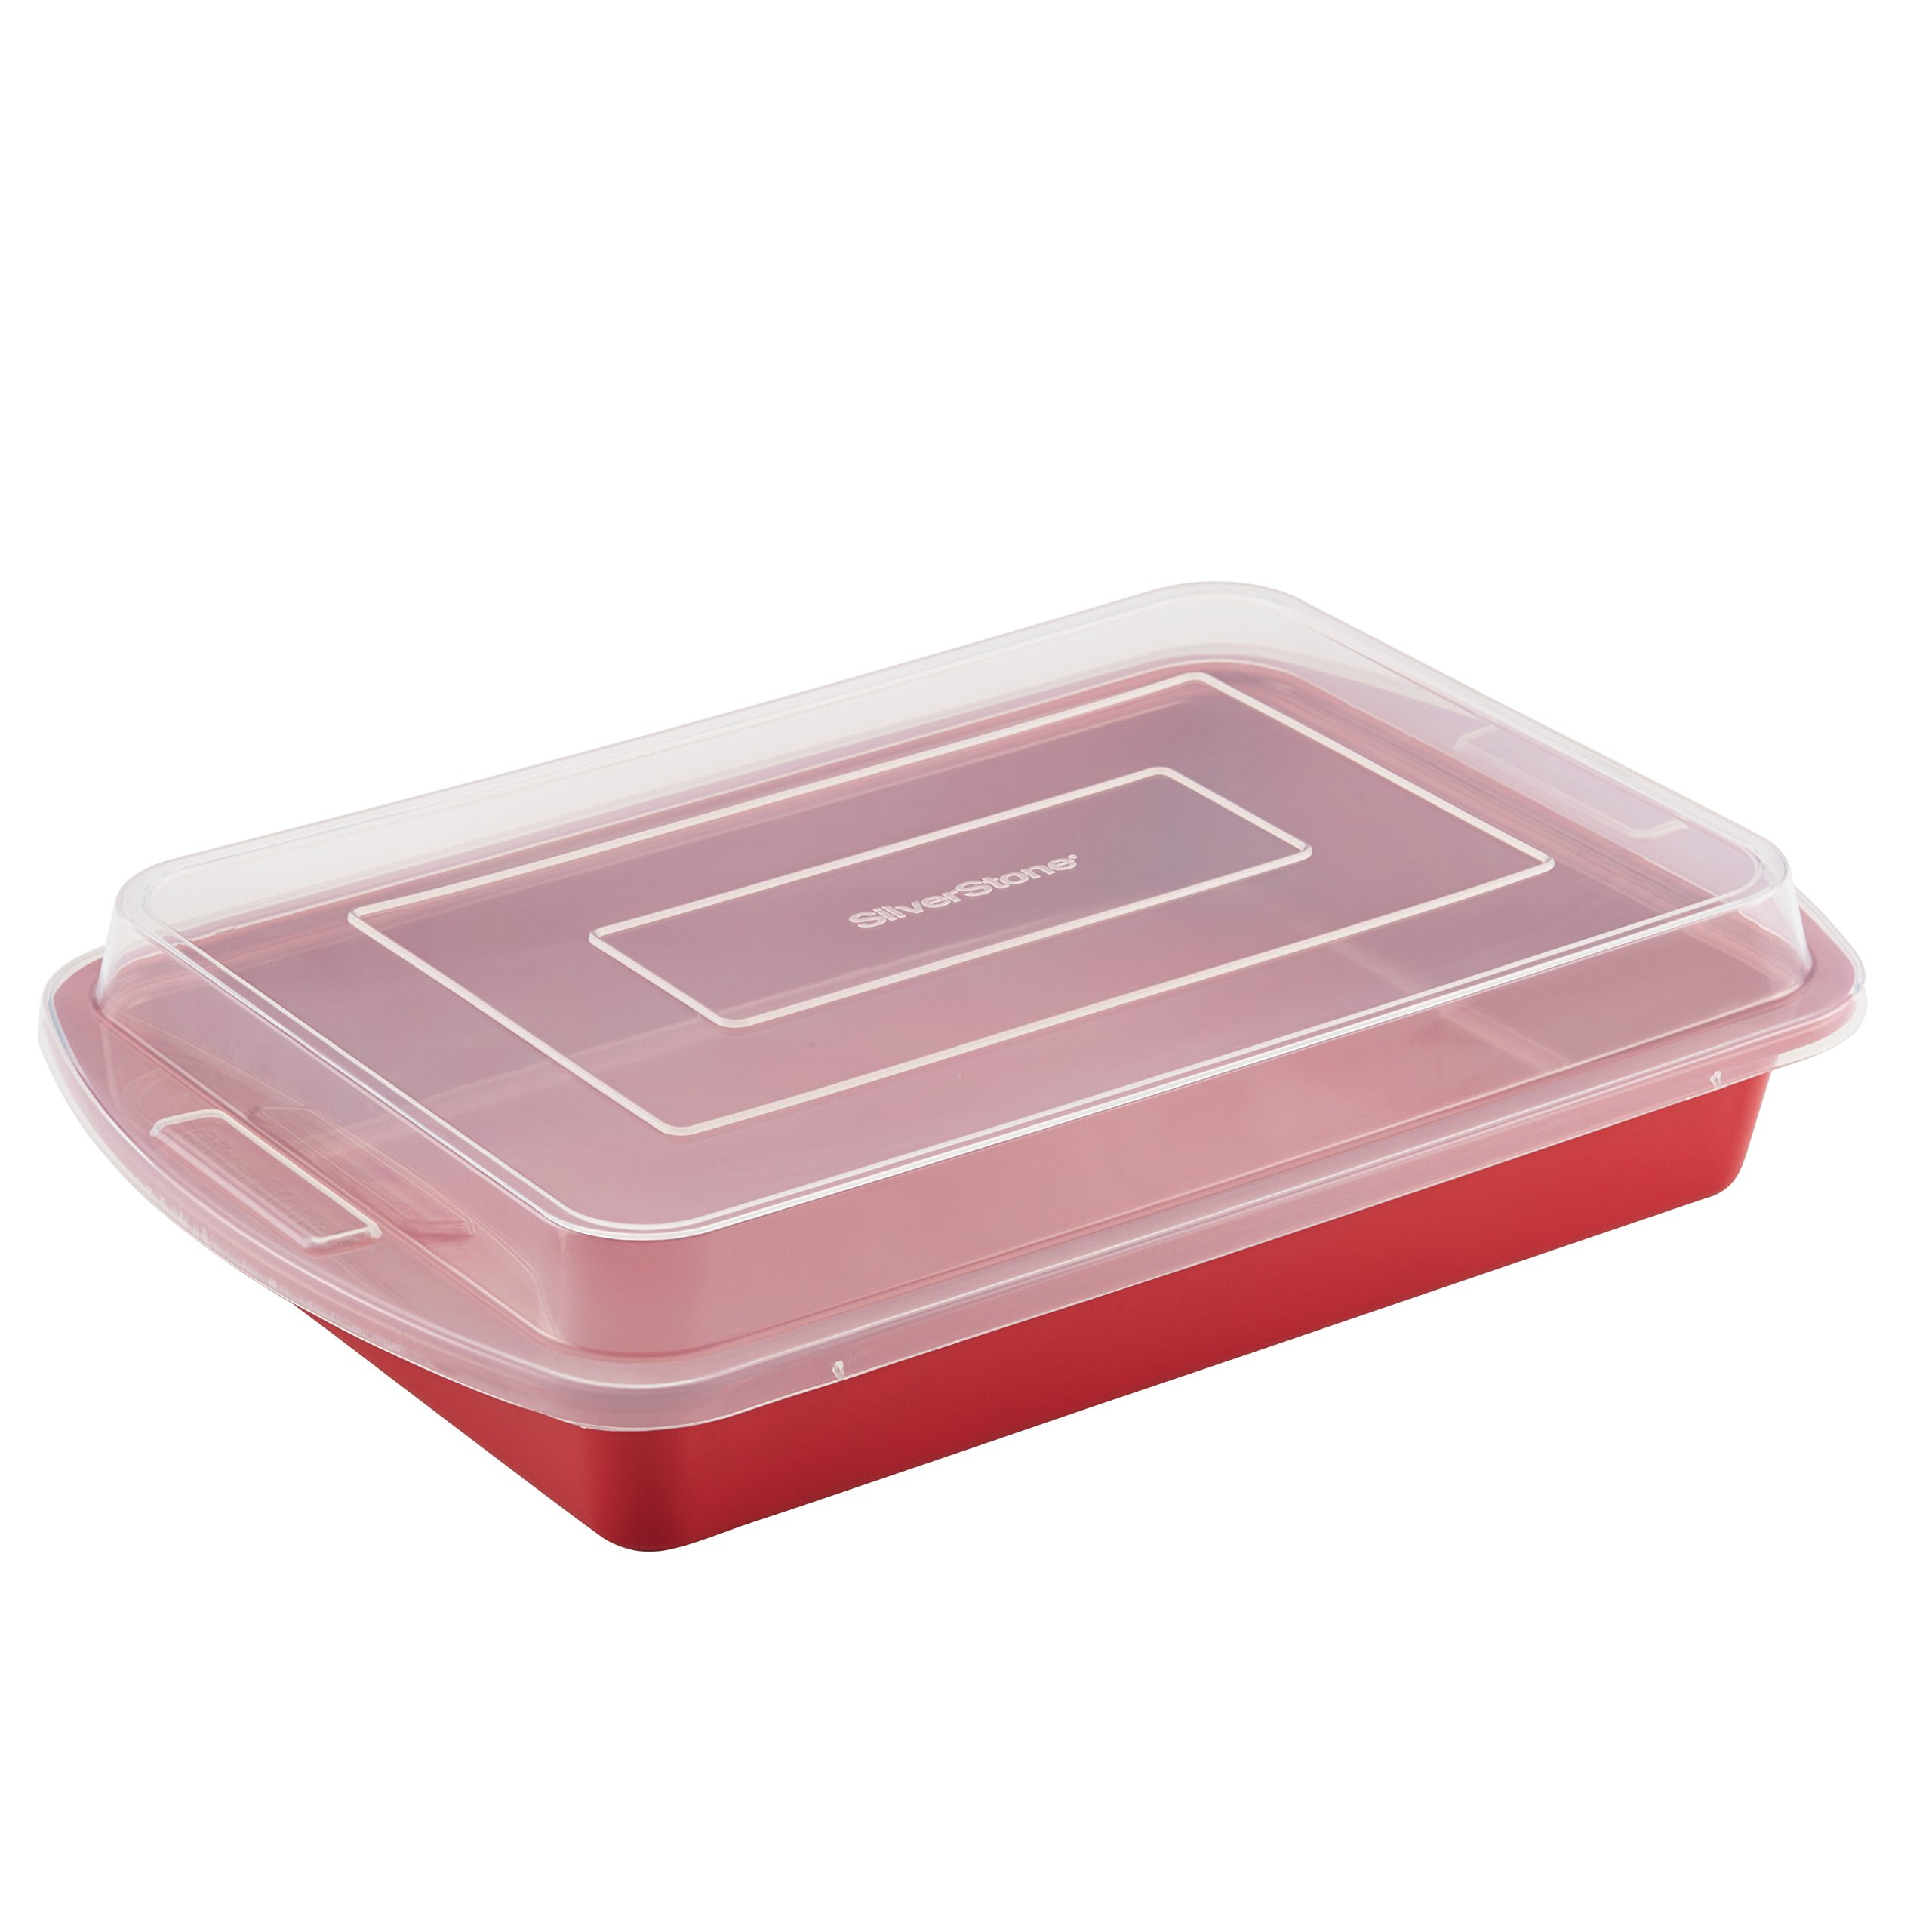 SilverStone Hybrid Ceramic Nonstick Bakeware Covered Cake Pan, 9-Inch x 13-Inch, Chili Red